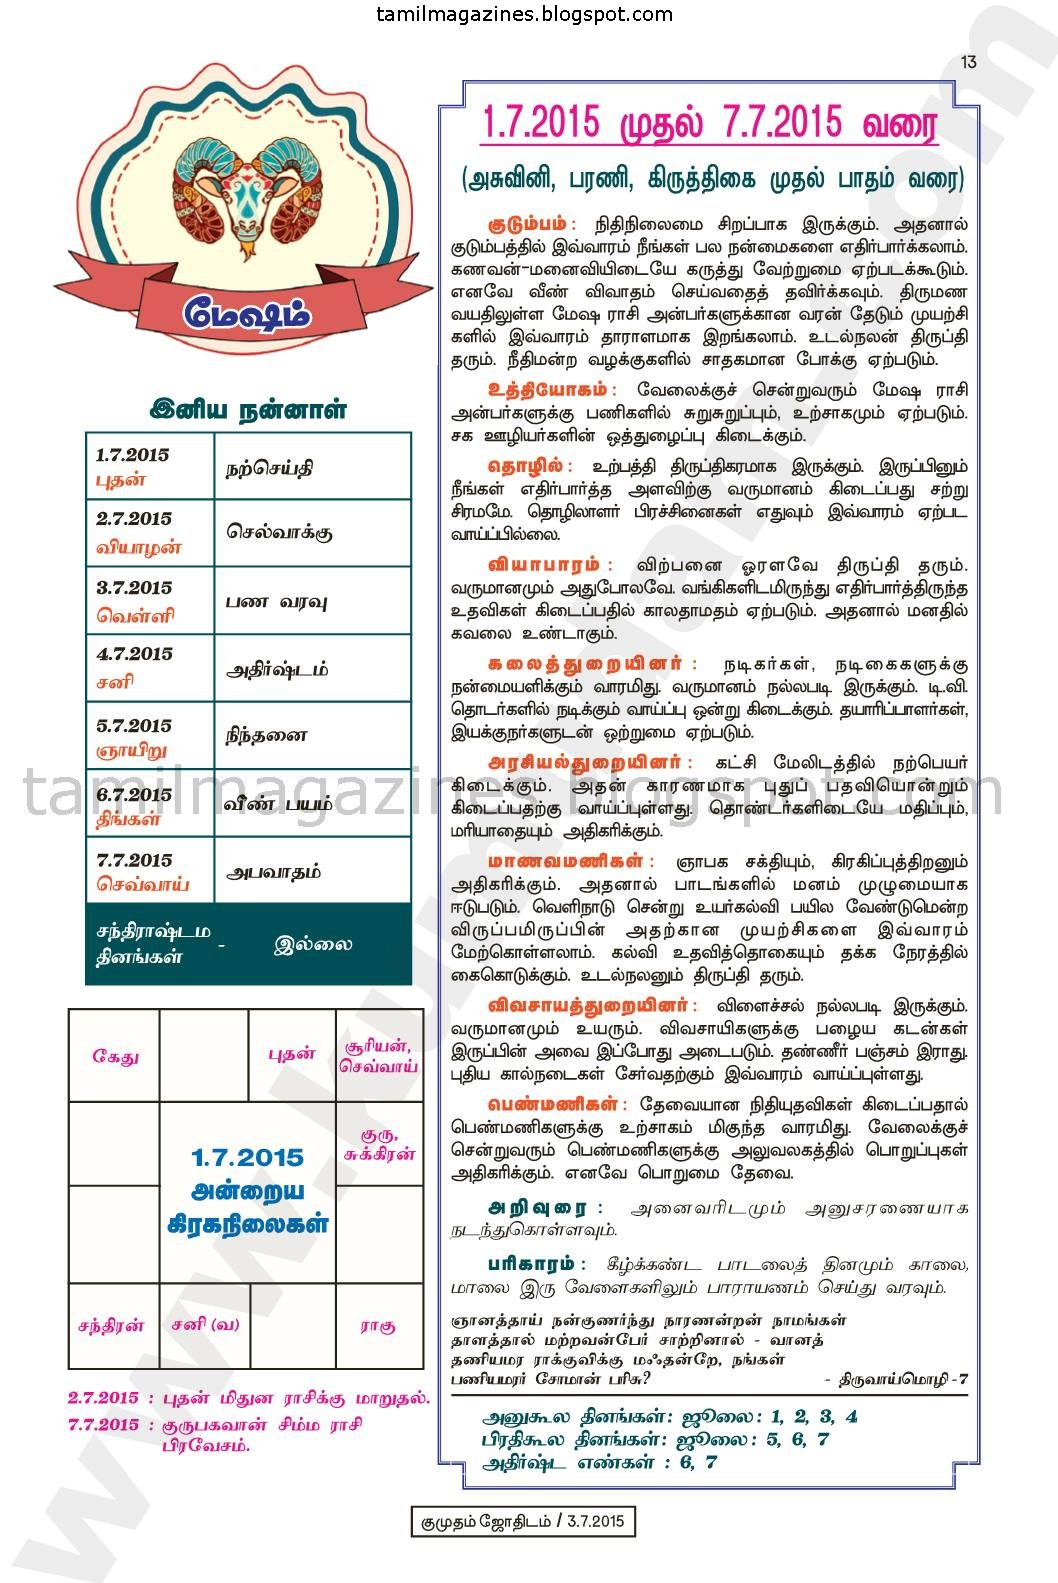 Read Raasi Palan forecast from Kumudam Jothidam for the period July 1